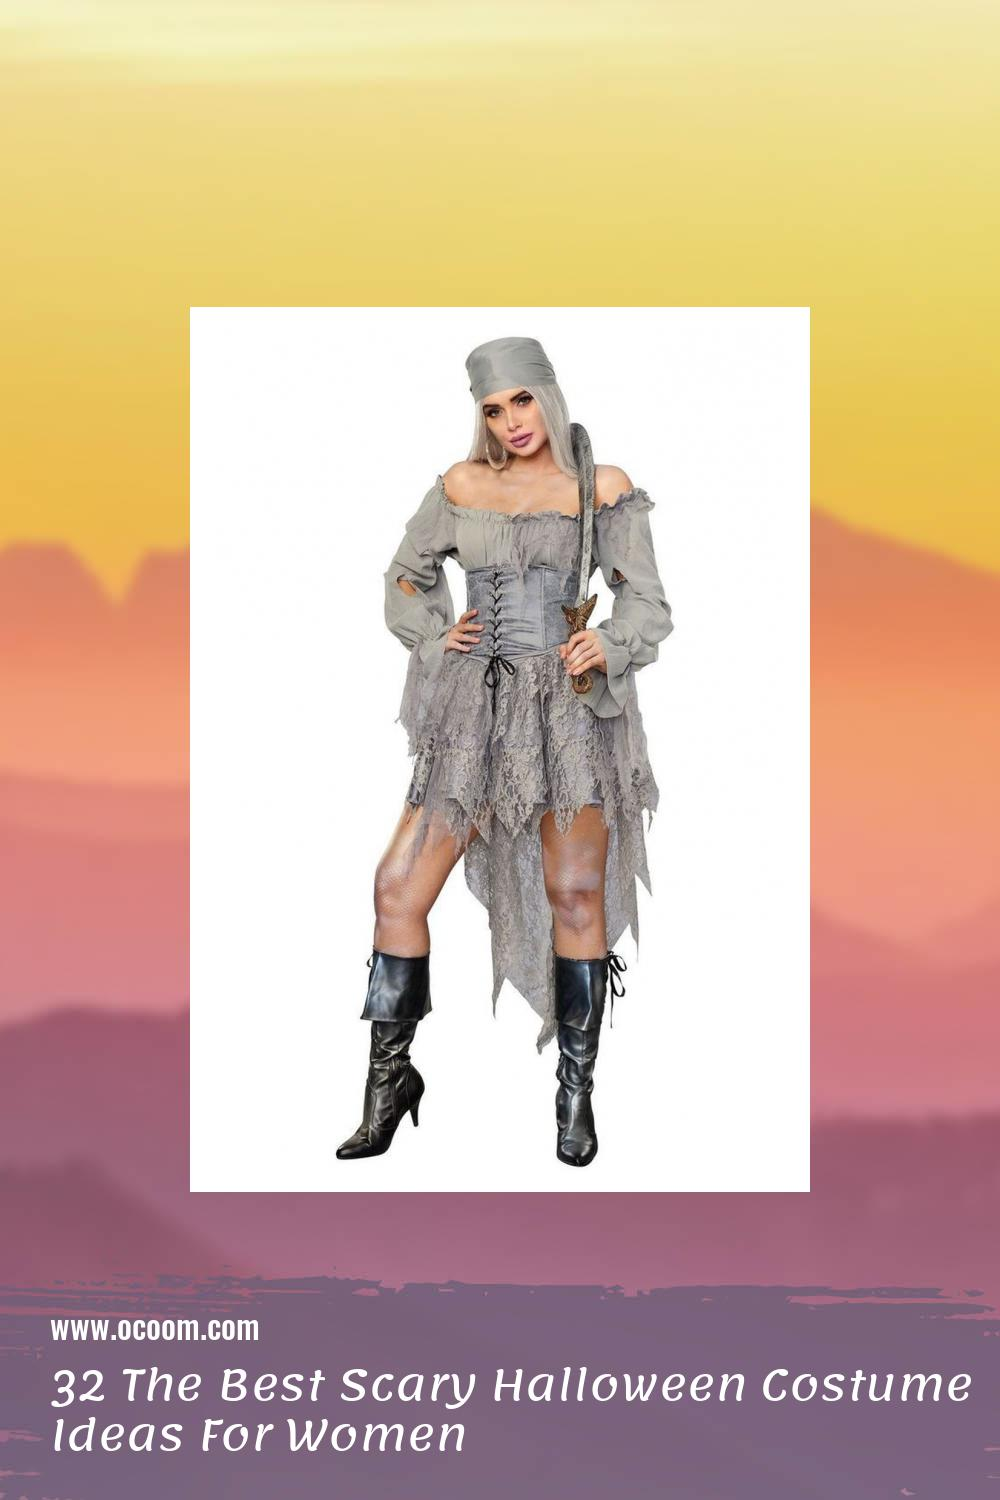 32 The Best Scary Halloween Costume Ideas For Women 37